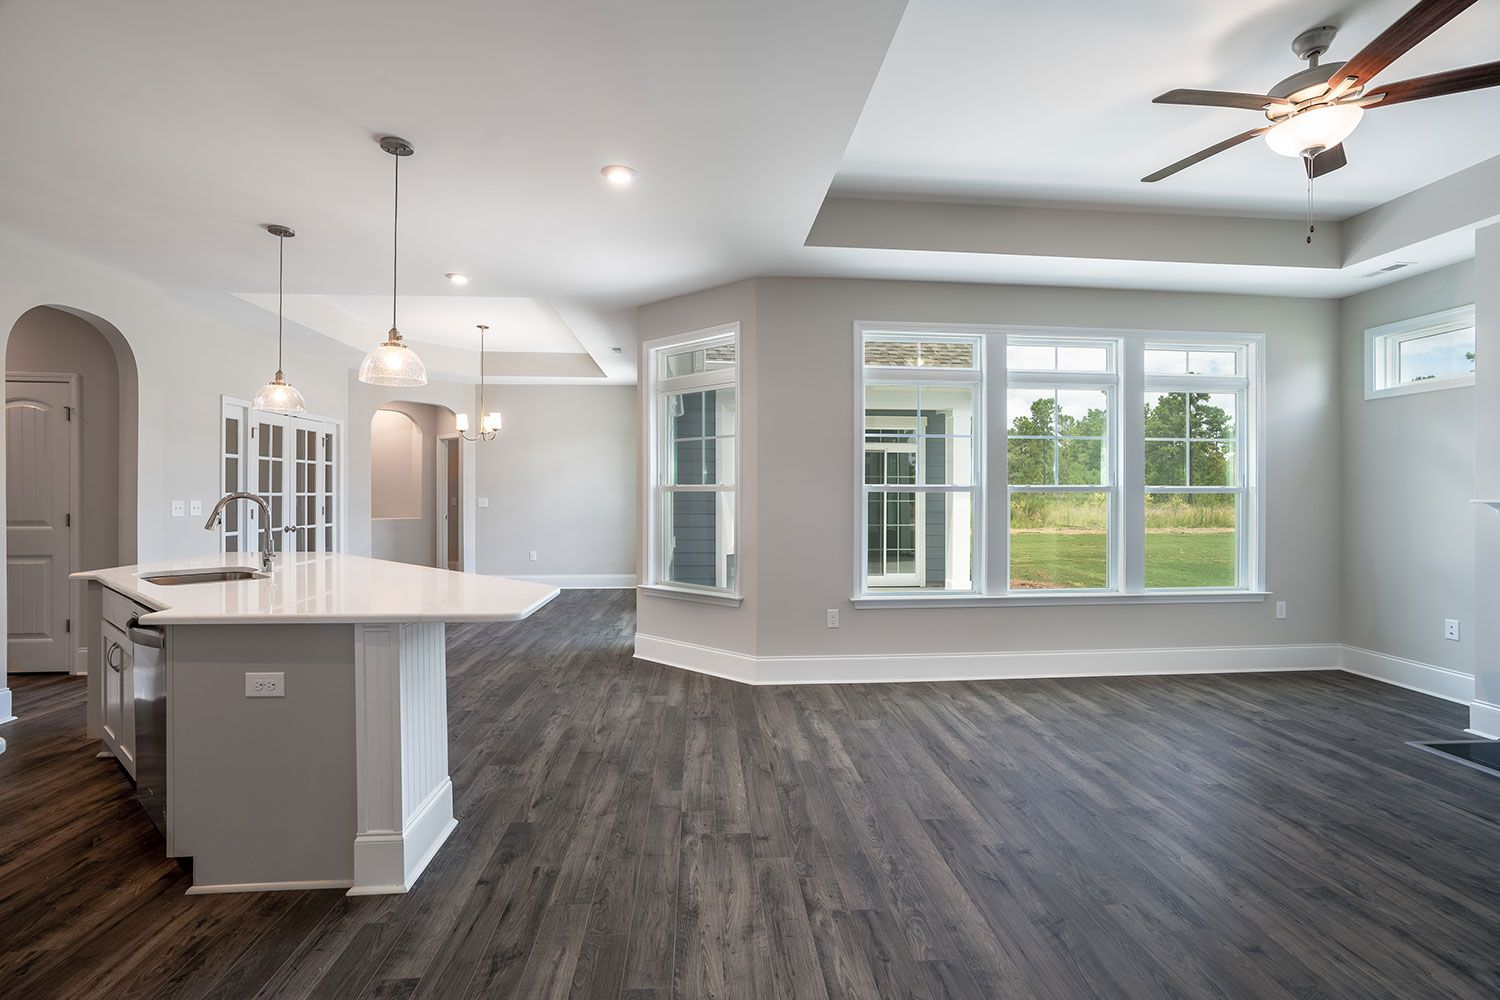 Kitchen featured in the Portico Craftsman By McKee Homes in Wilmington, NC